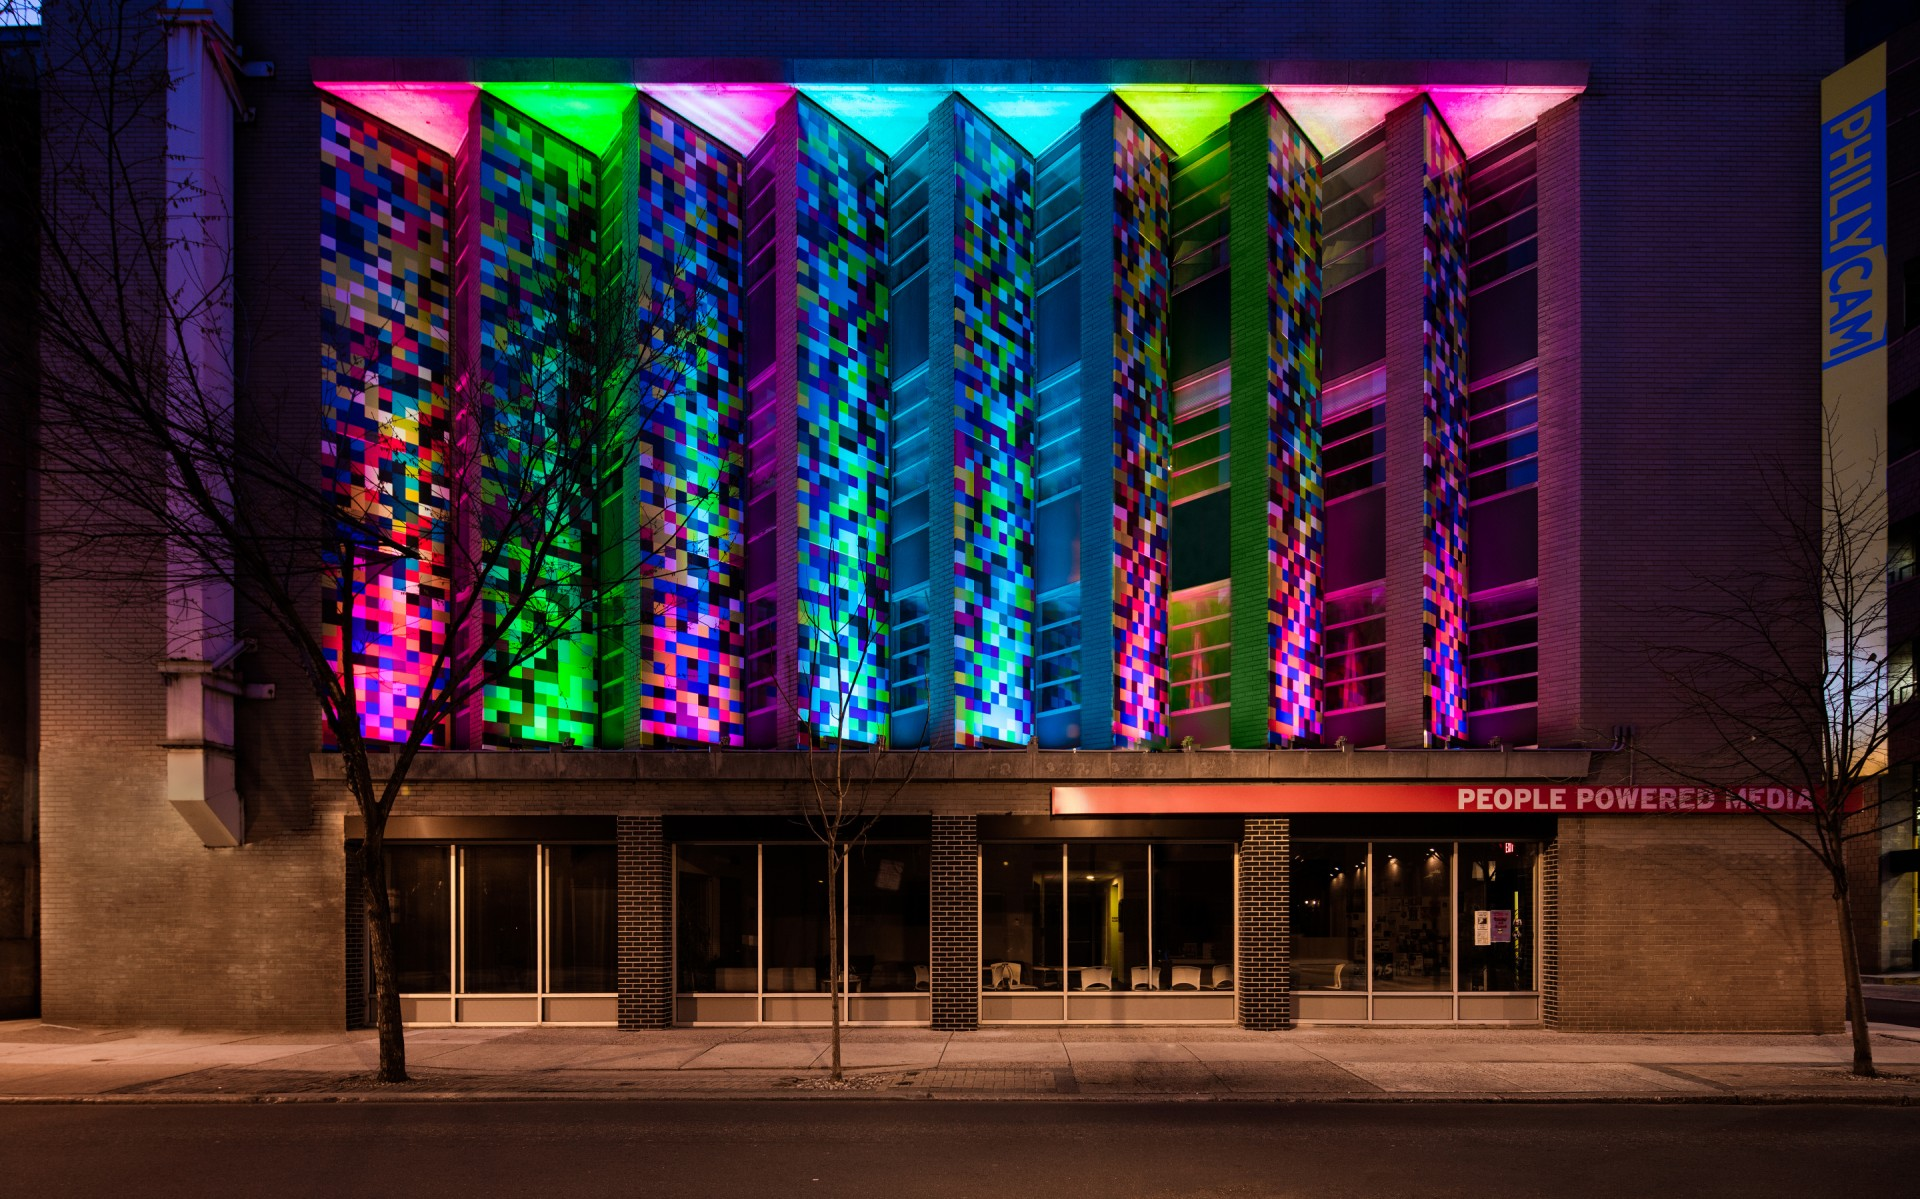 Programmed to cycle through different colors, the luminaires were carefully aimed to limit glare and light pollution.